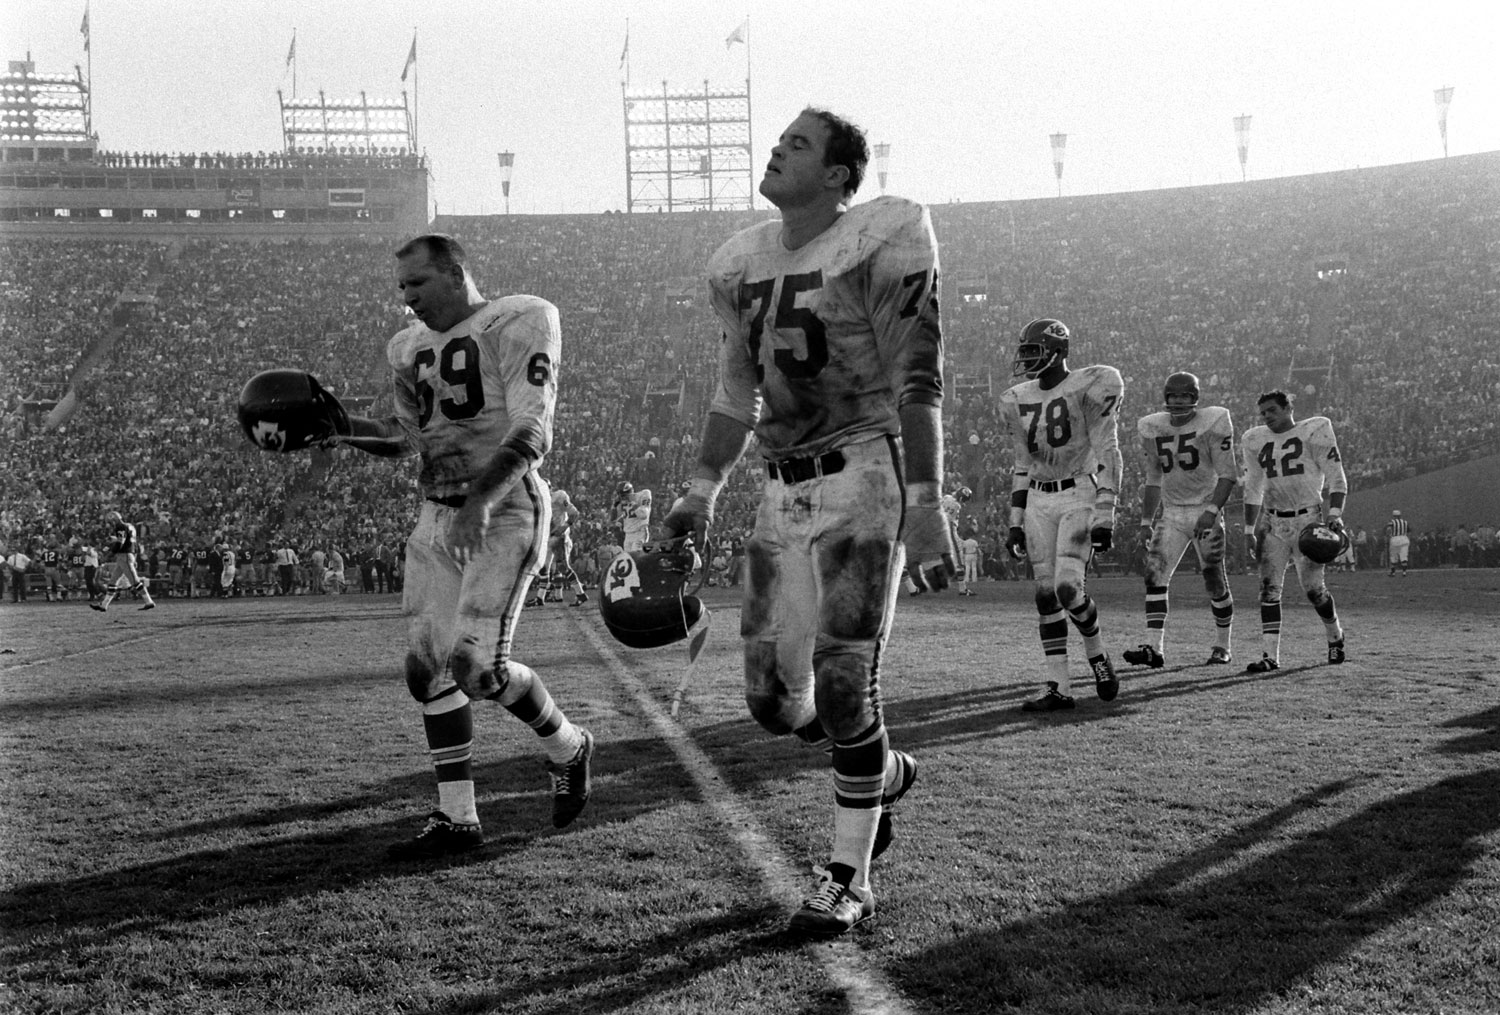 <b>Not published in LIFE.</b> Sherrill Headrick, Jerry Mays and other Kansas City Chiefs, Super Bowl I, 1967.